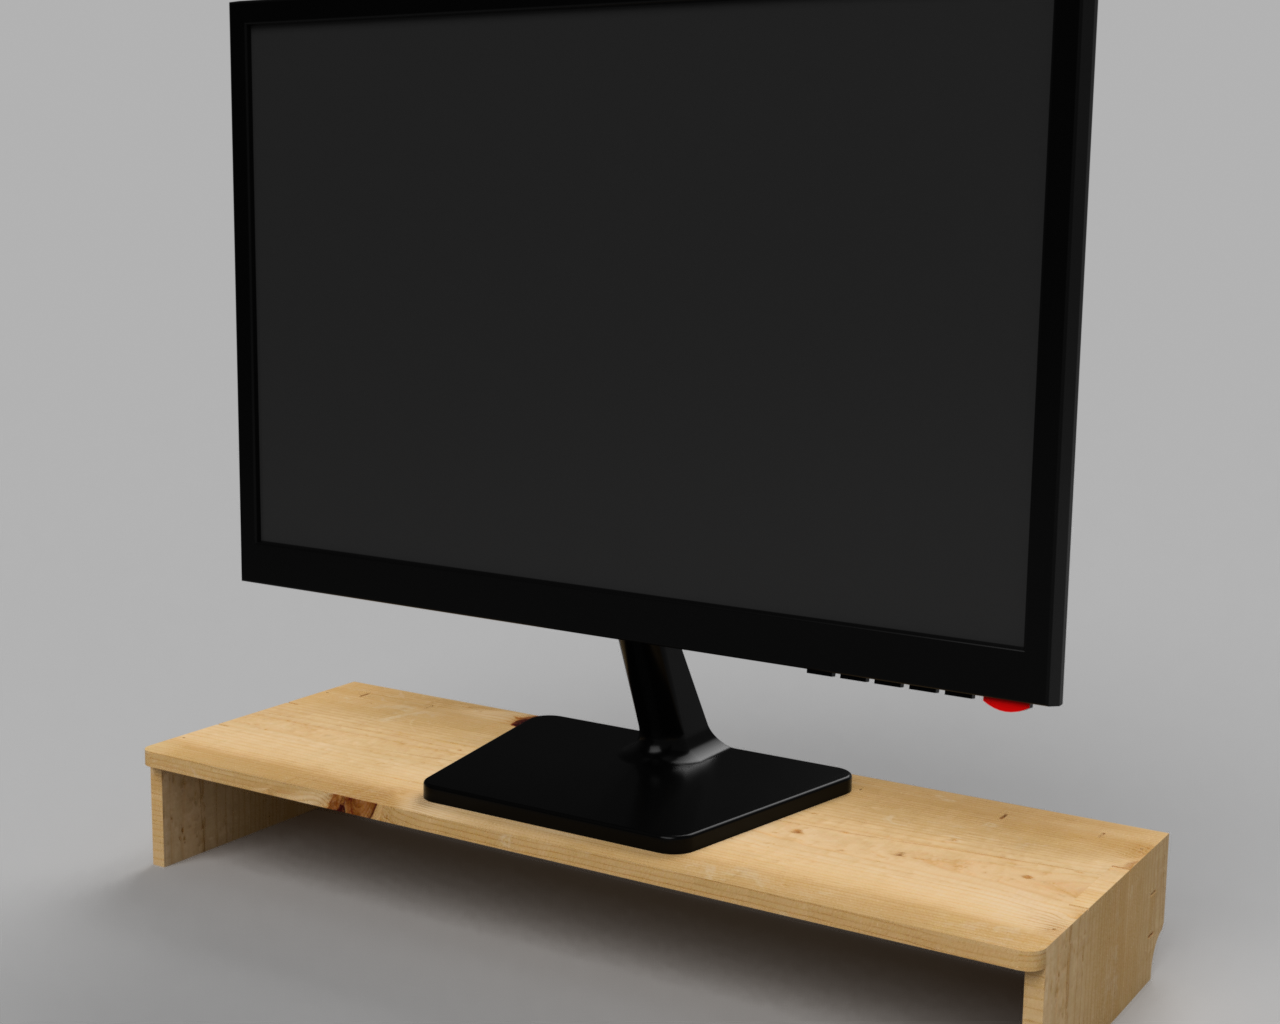 tutoriel diy support pour cran de pc fixe. Black Bedroom Furniture Sets. Home Design Ideas